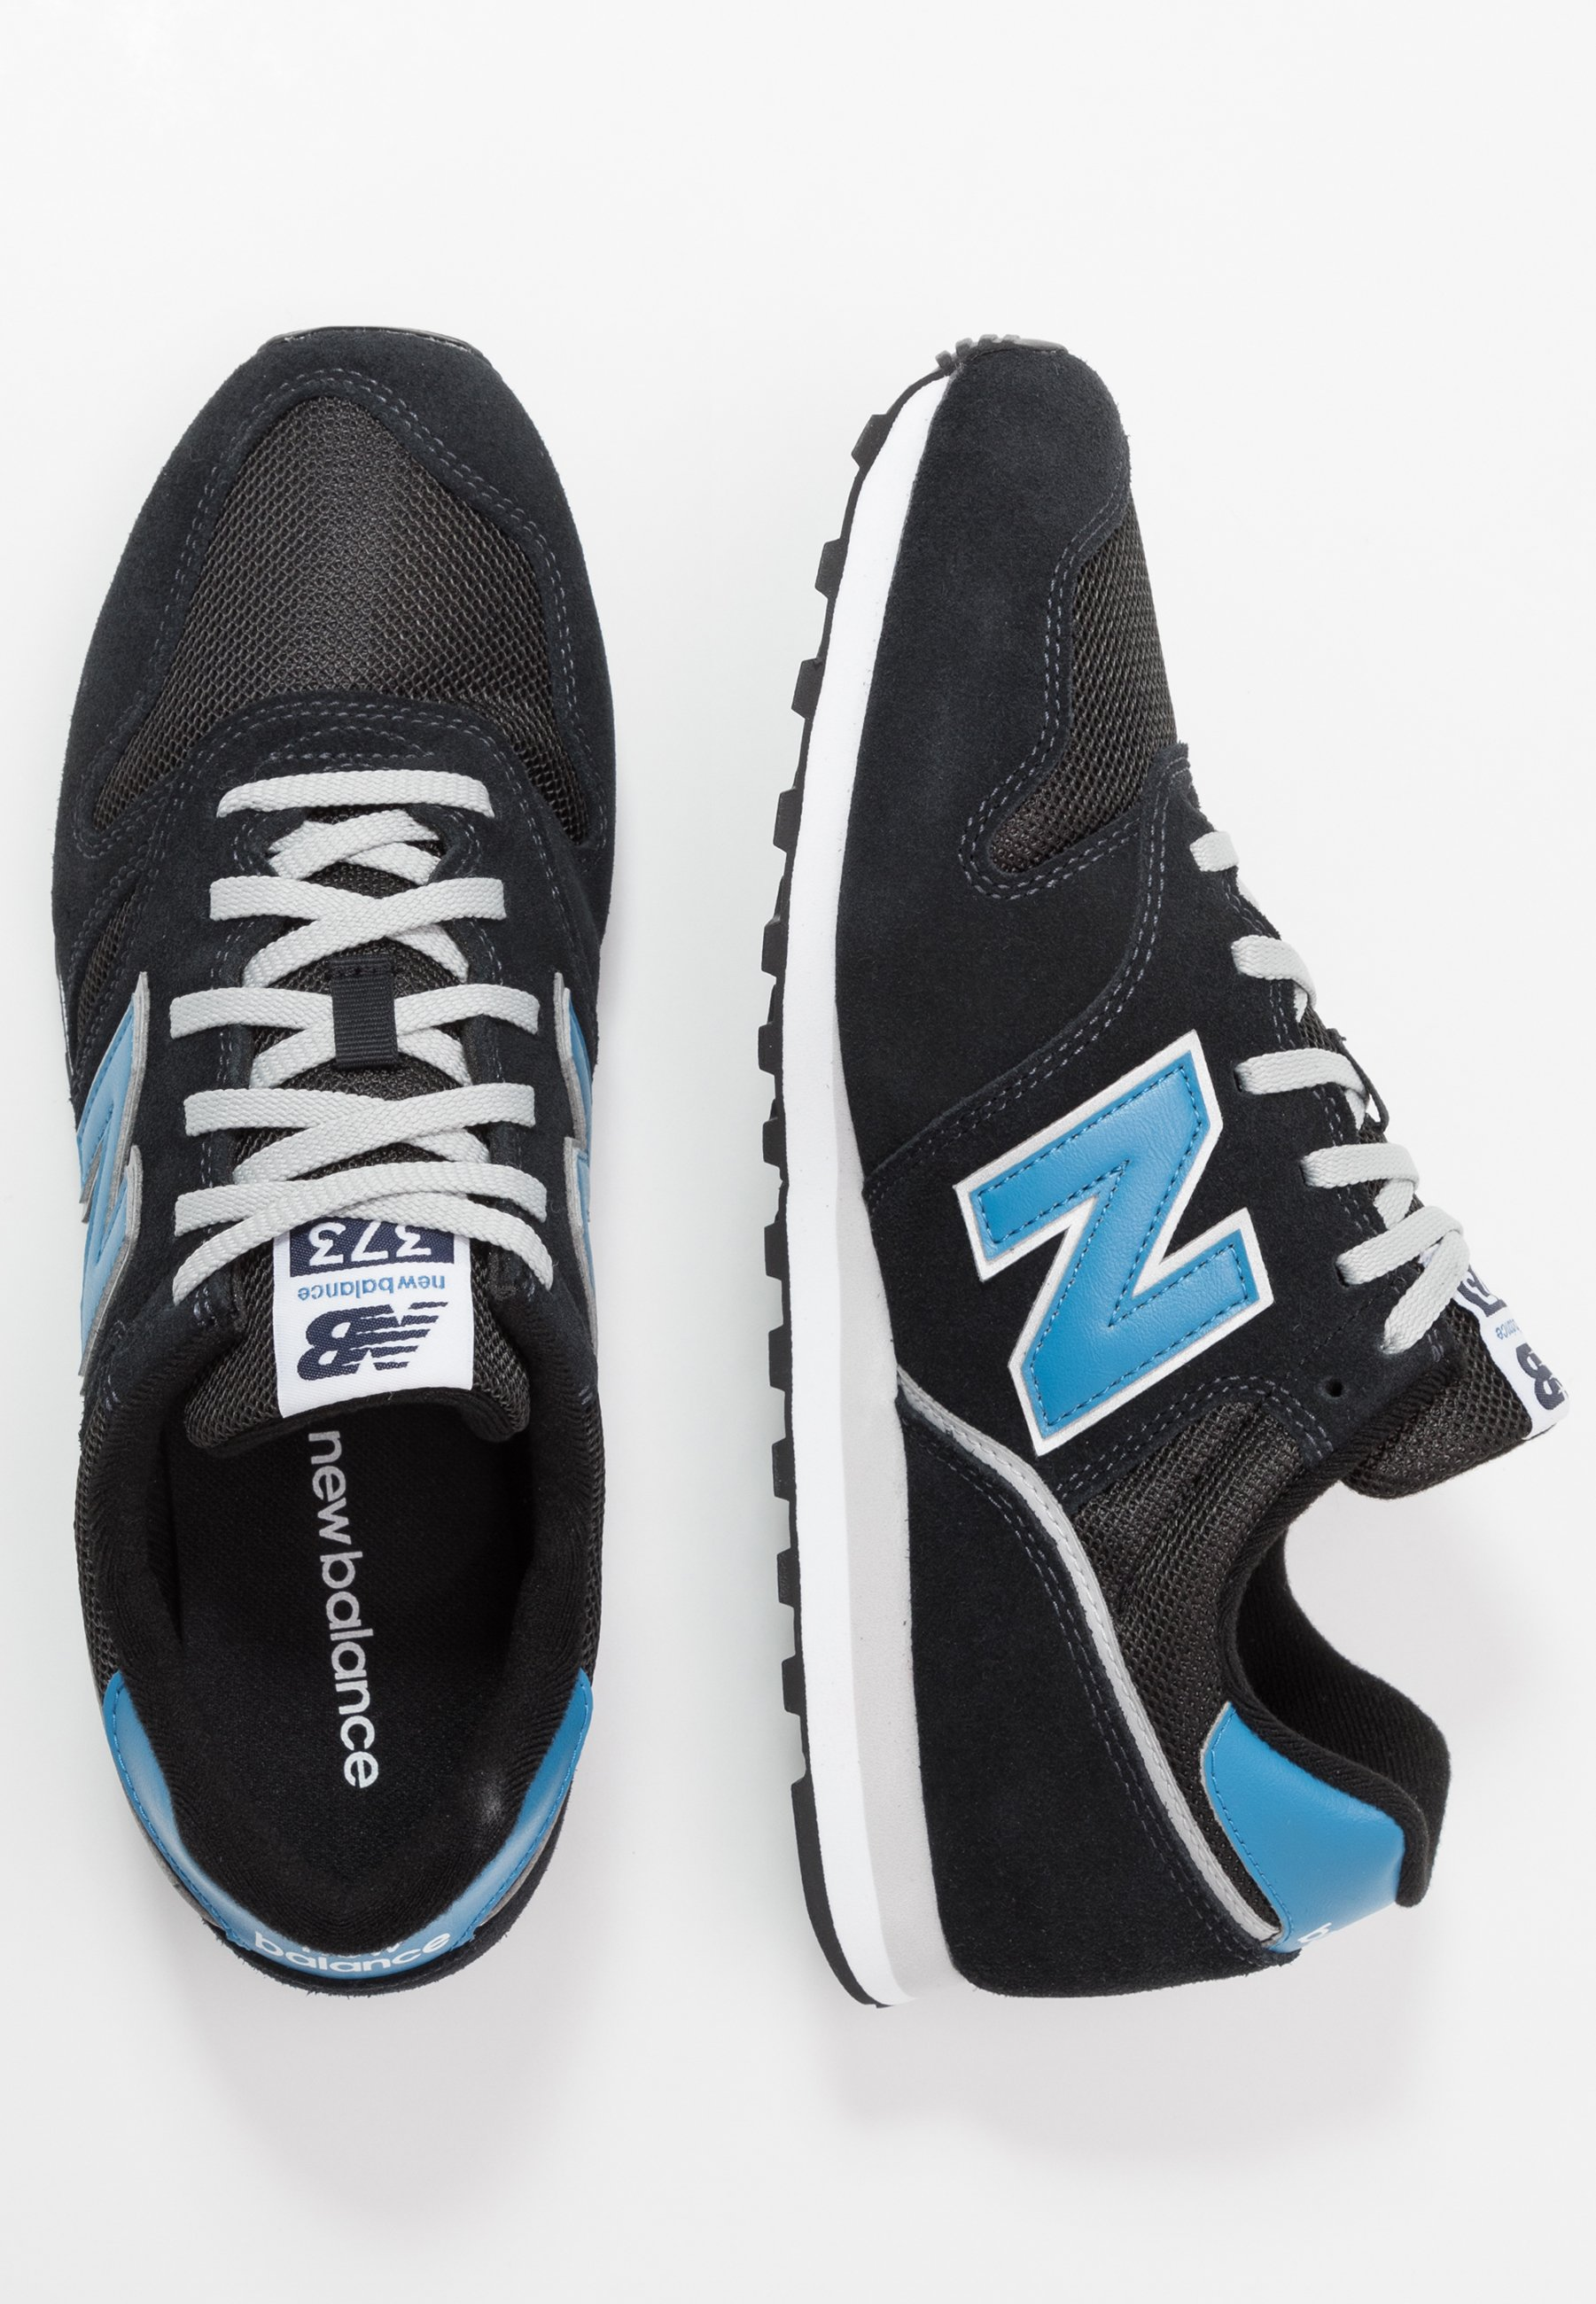 373 - Sneaker low - black/blue